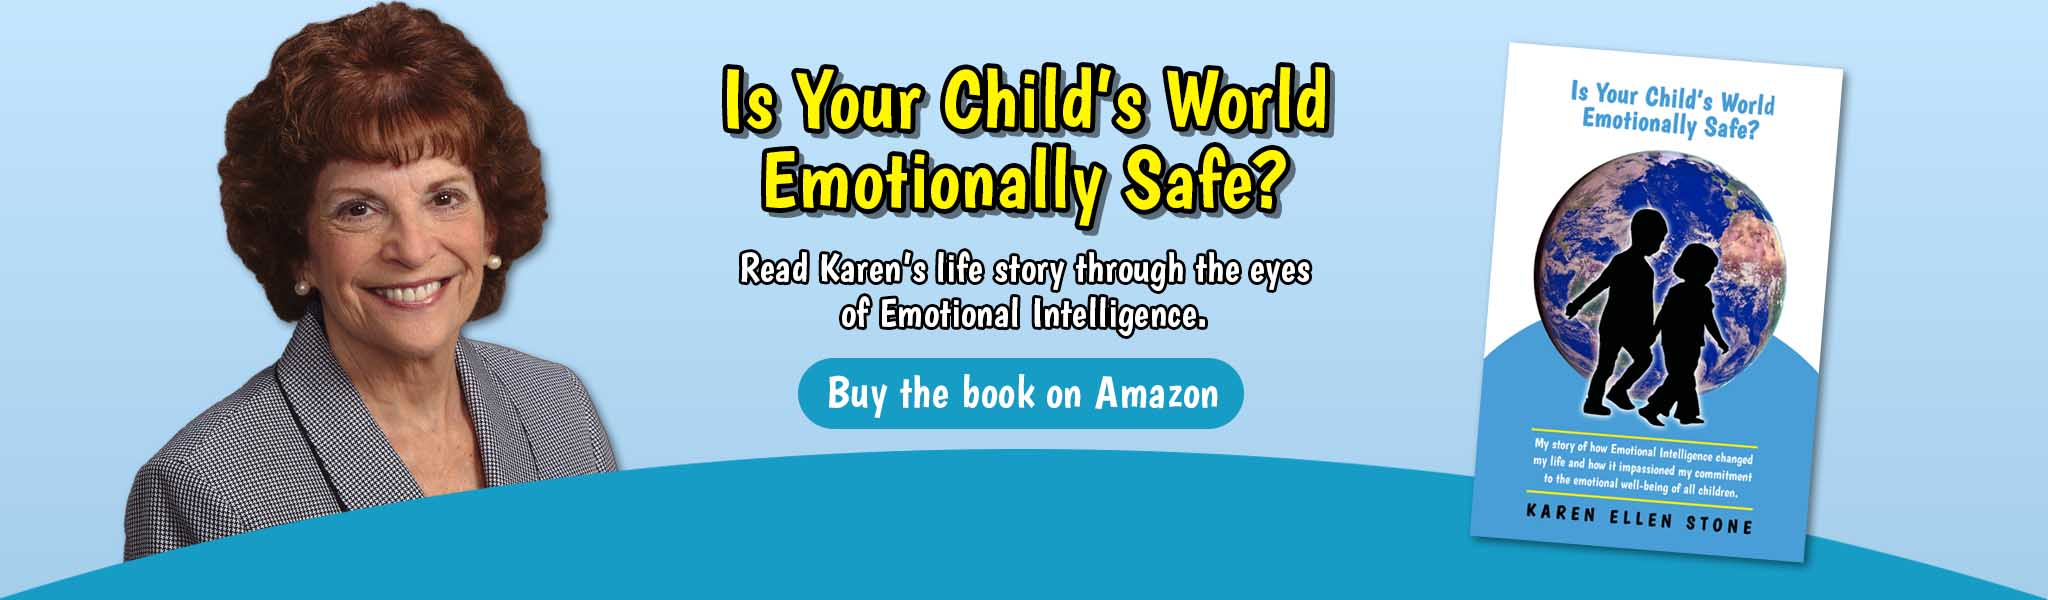 Is Your Childs World Emotionally Safe - Banner